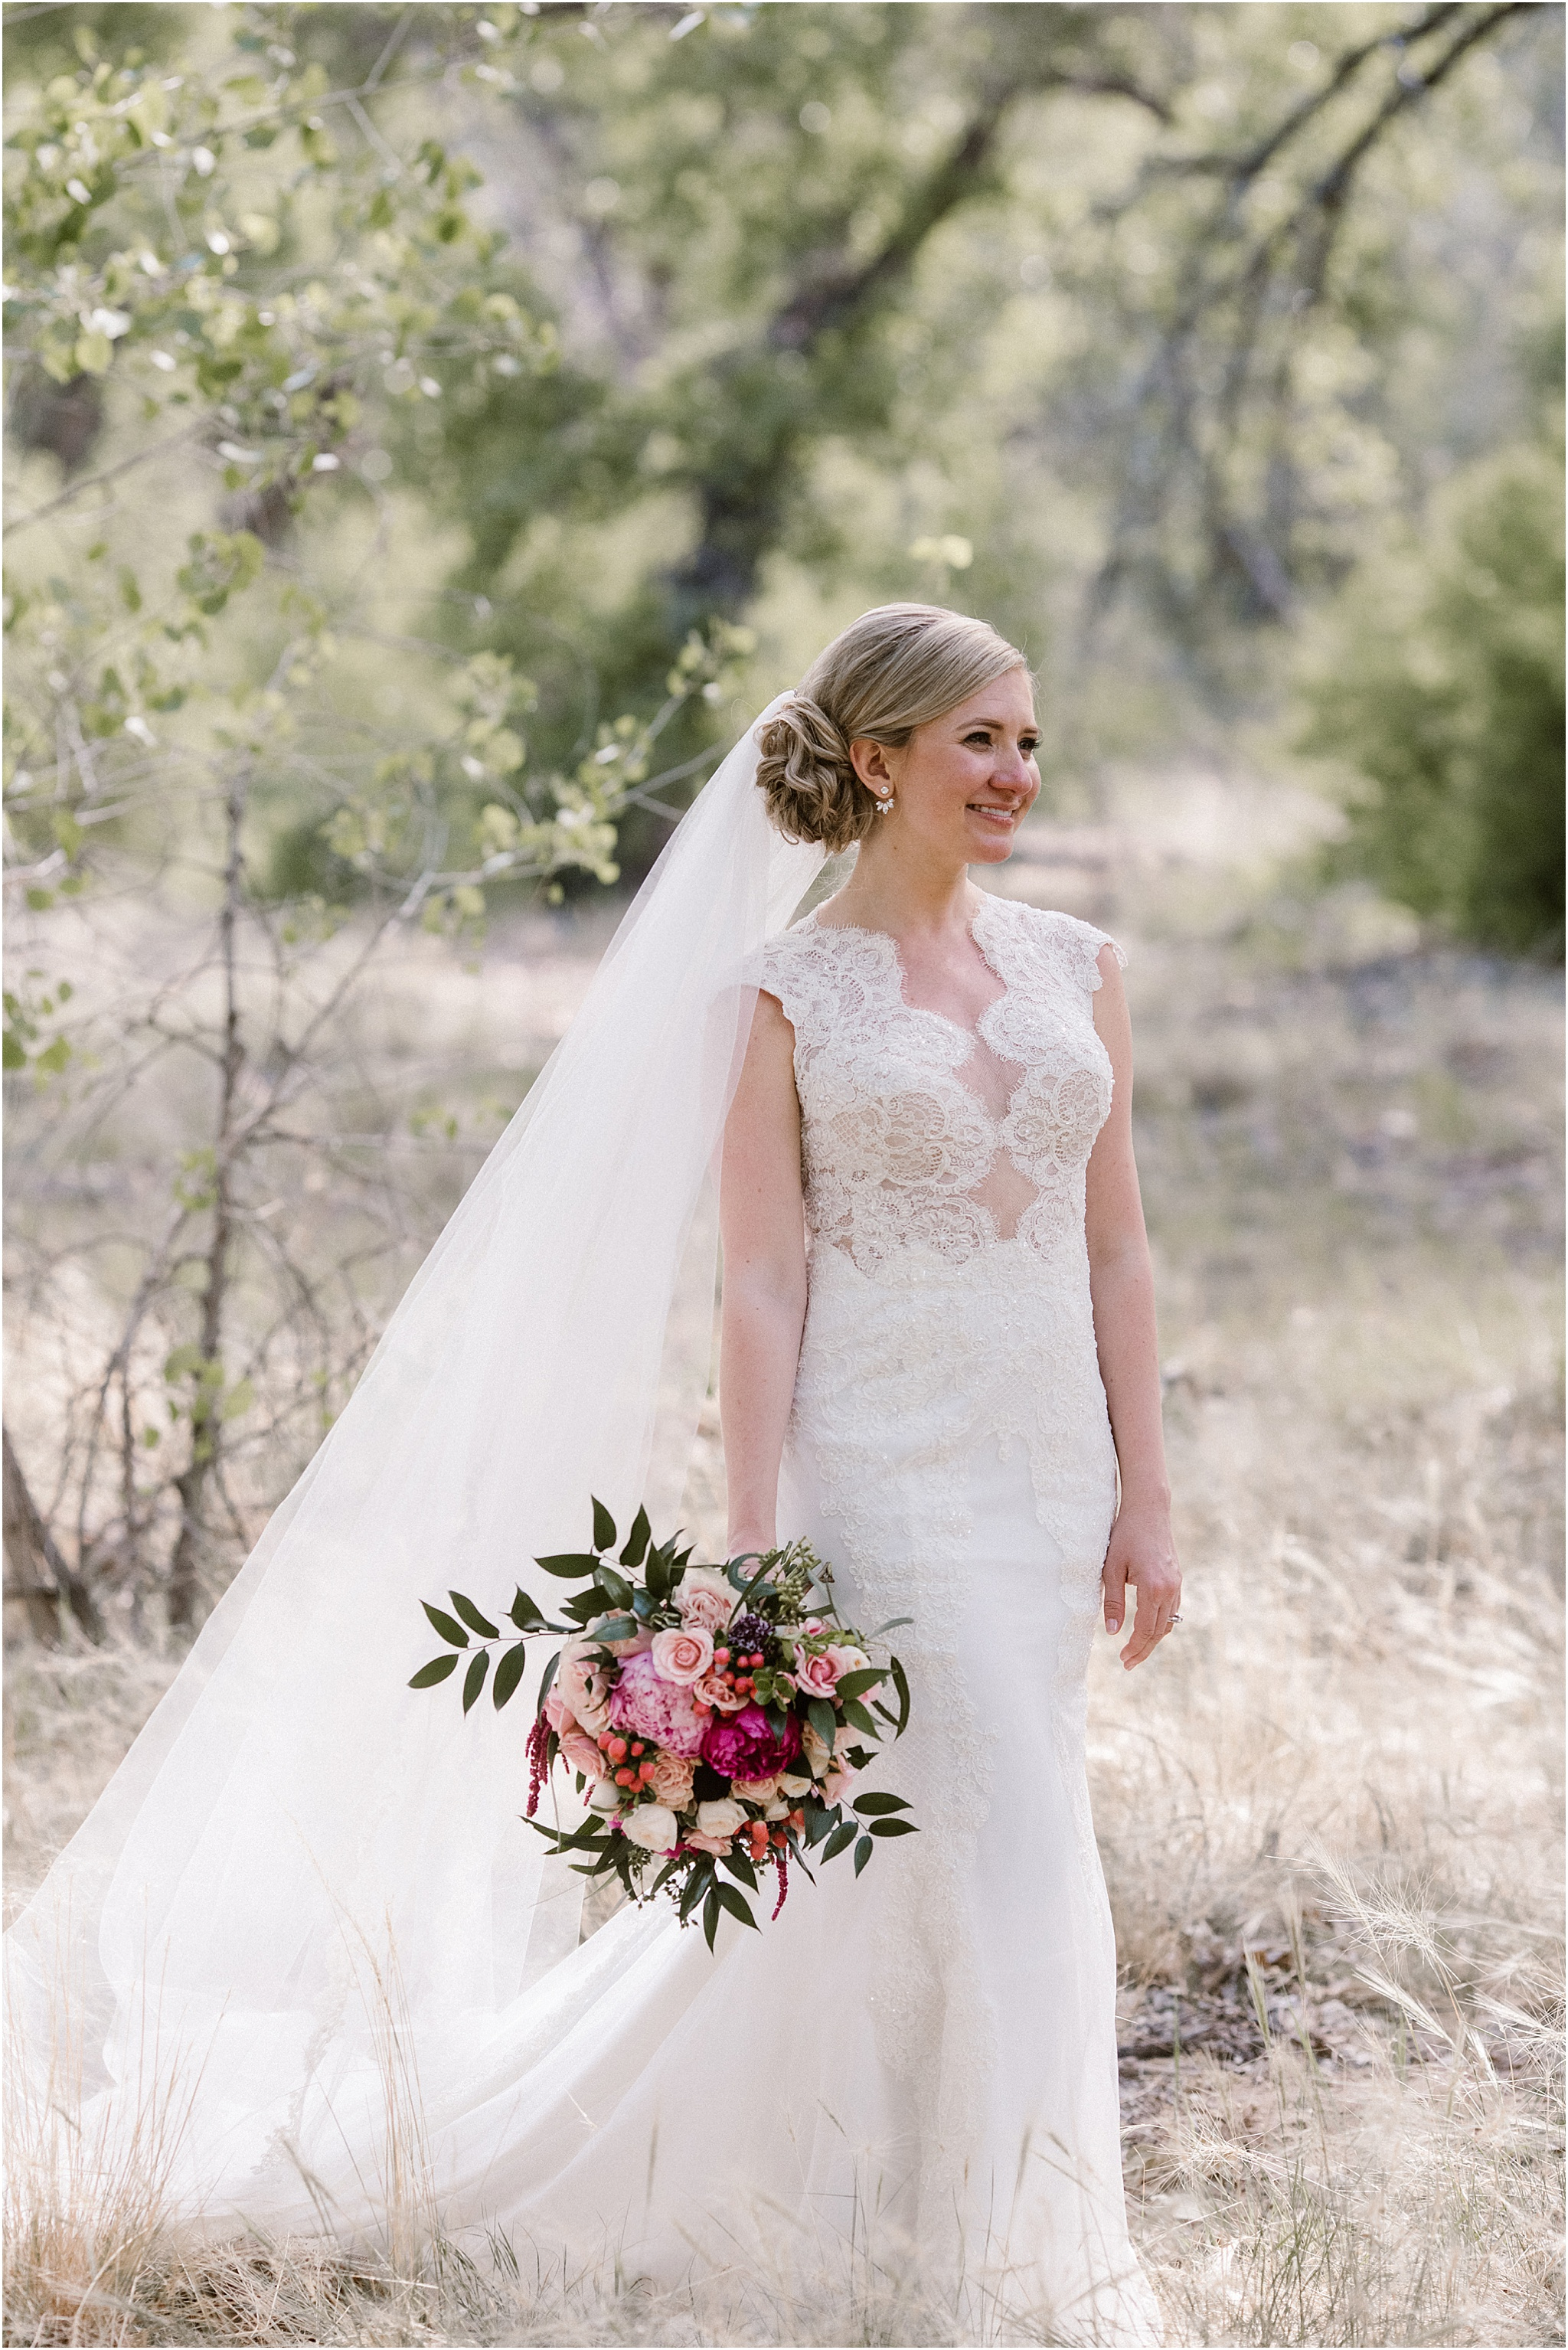 JENNA_JEROME_BLUE ROSE PHOTOGRAPHY_ABQ WEDDING_29